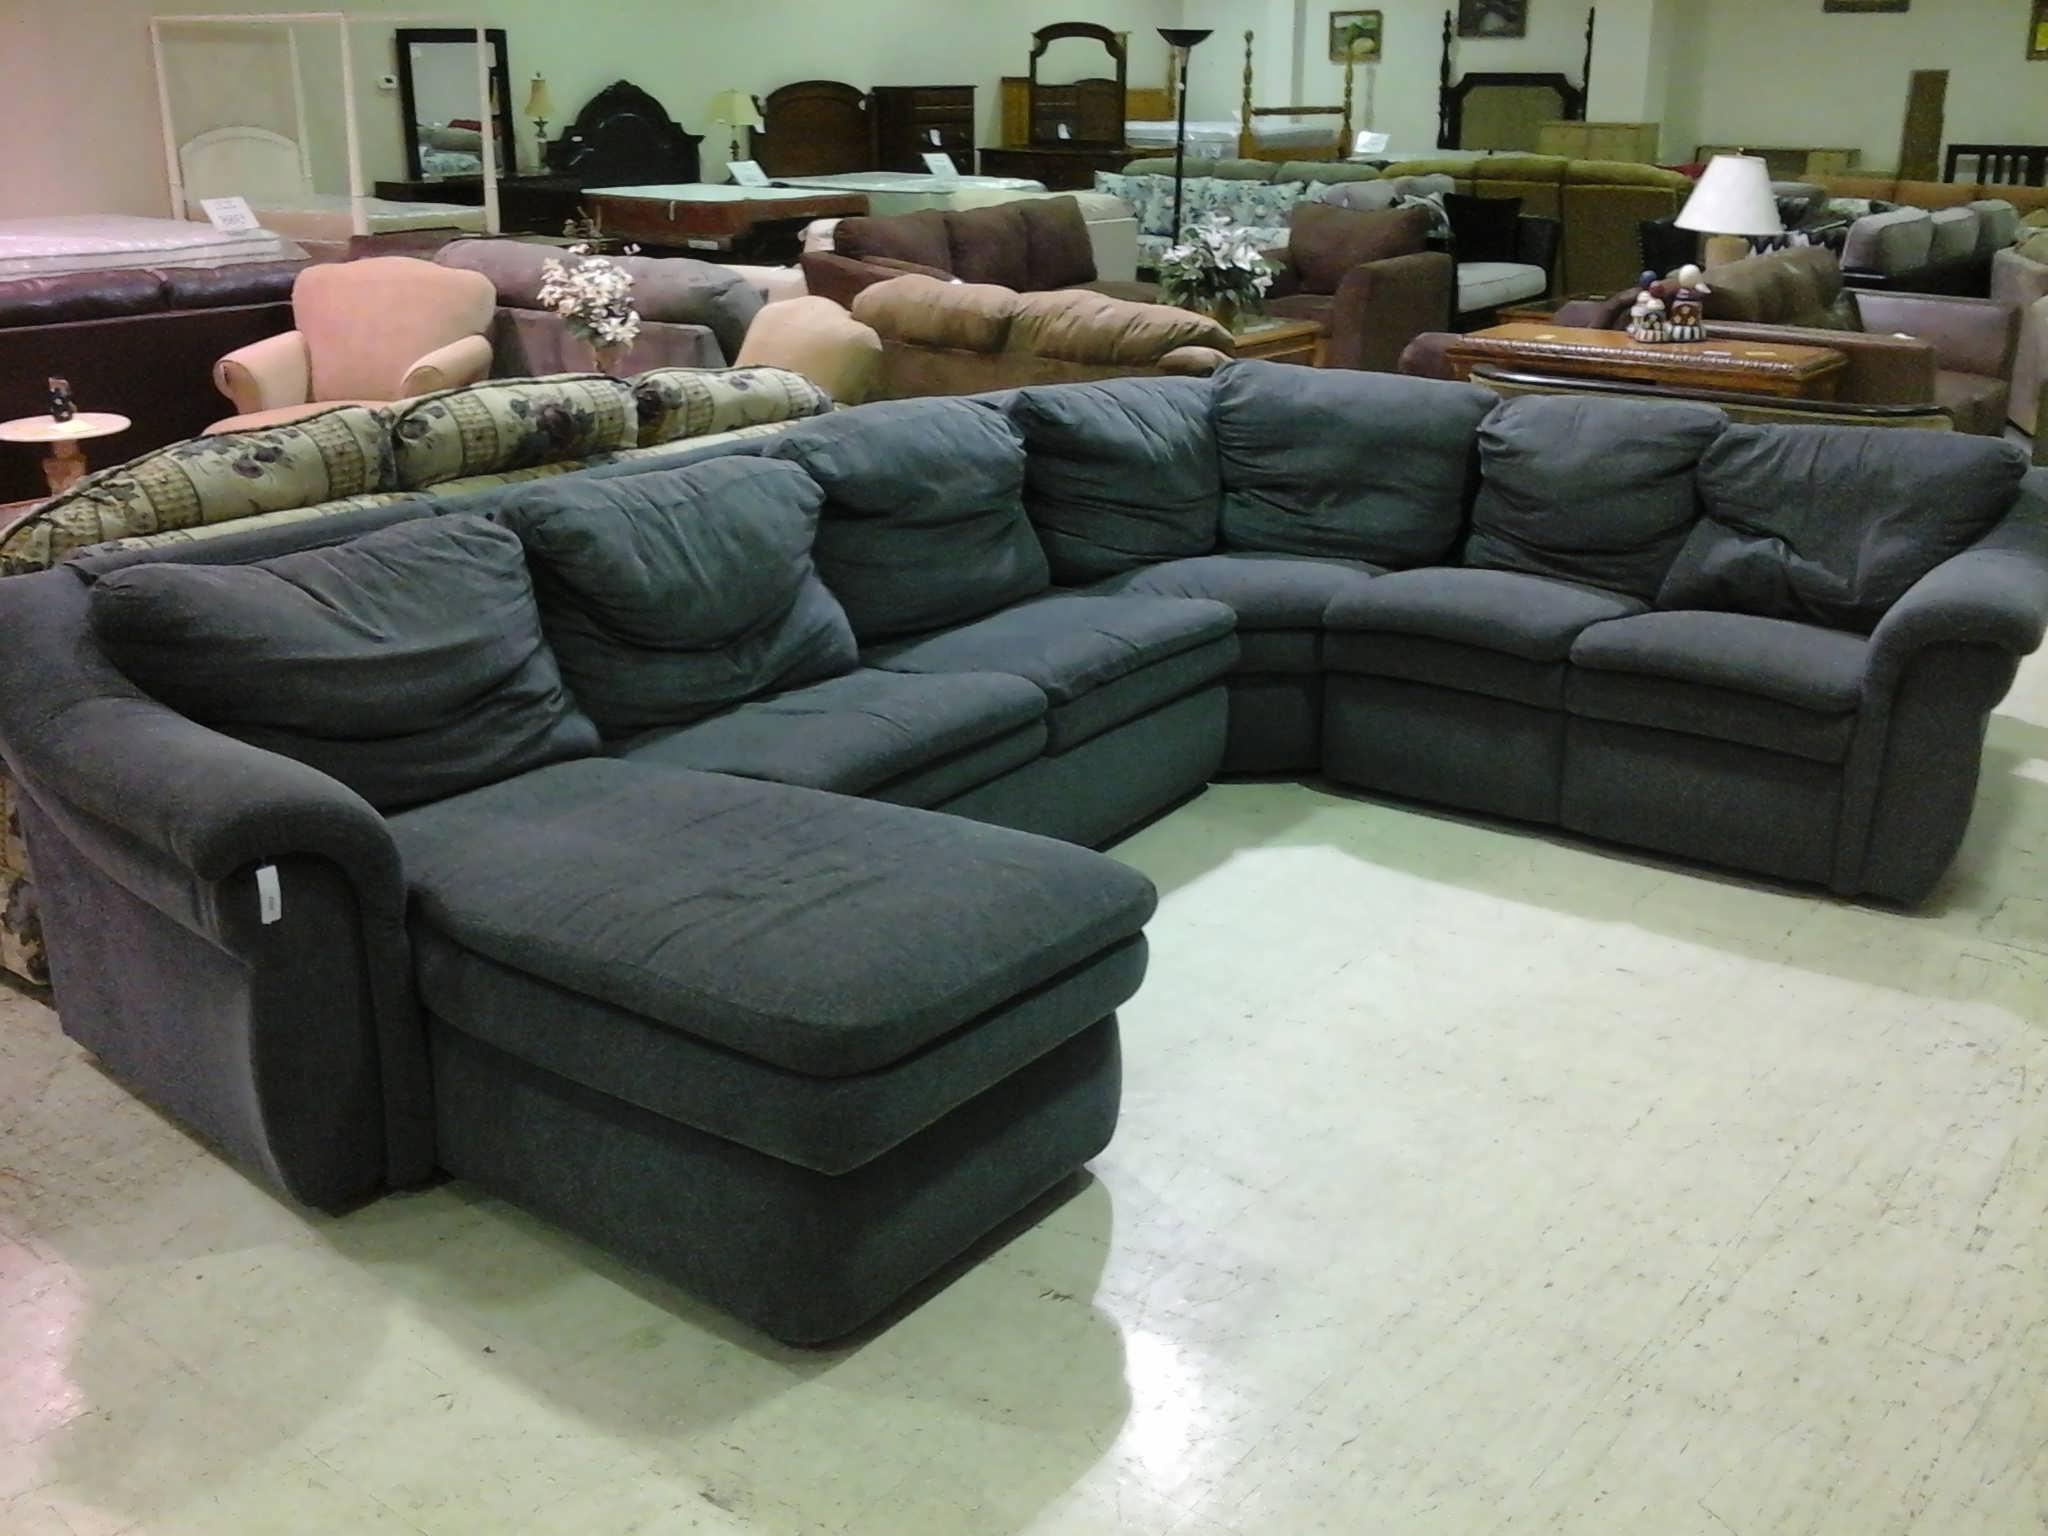 Sofa : Chaise Sofa Leather L Shaped Couch Black Sectional Couch In Well Known Sectional Couches With Chaise (View 8 of 15)